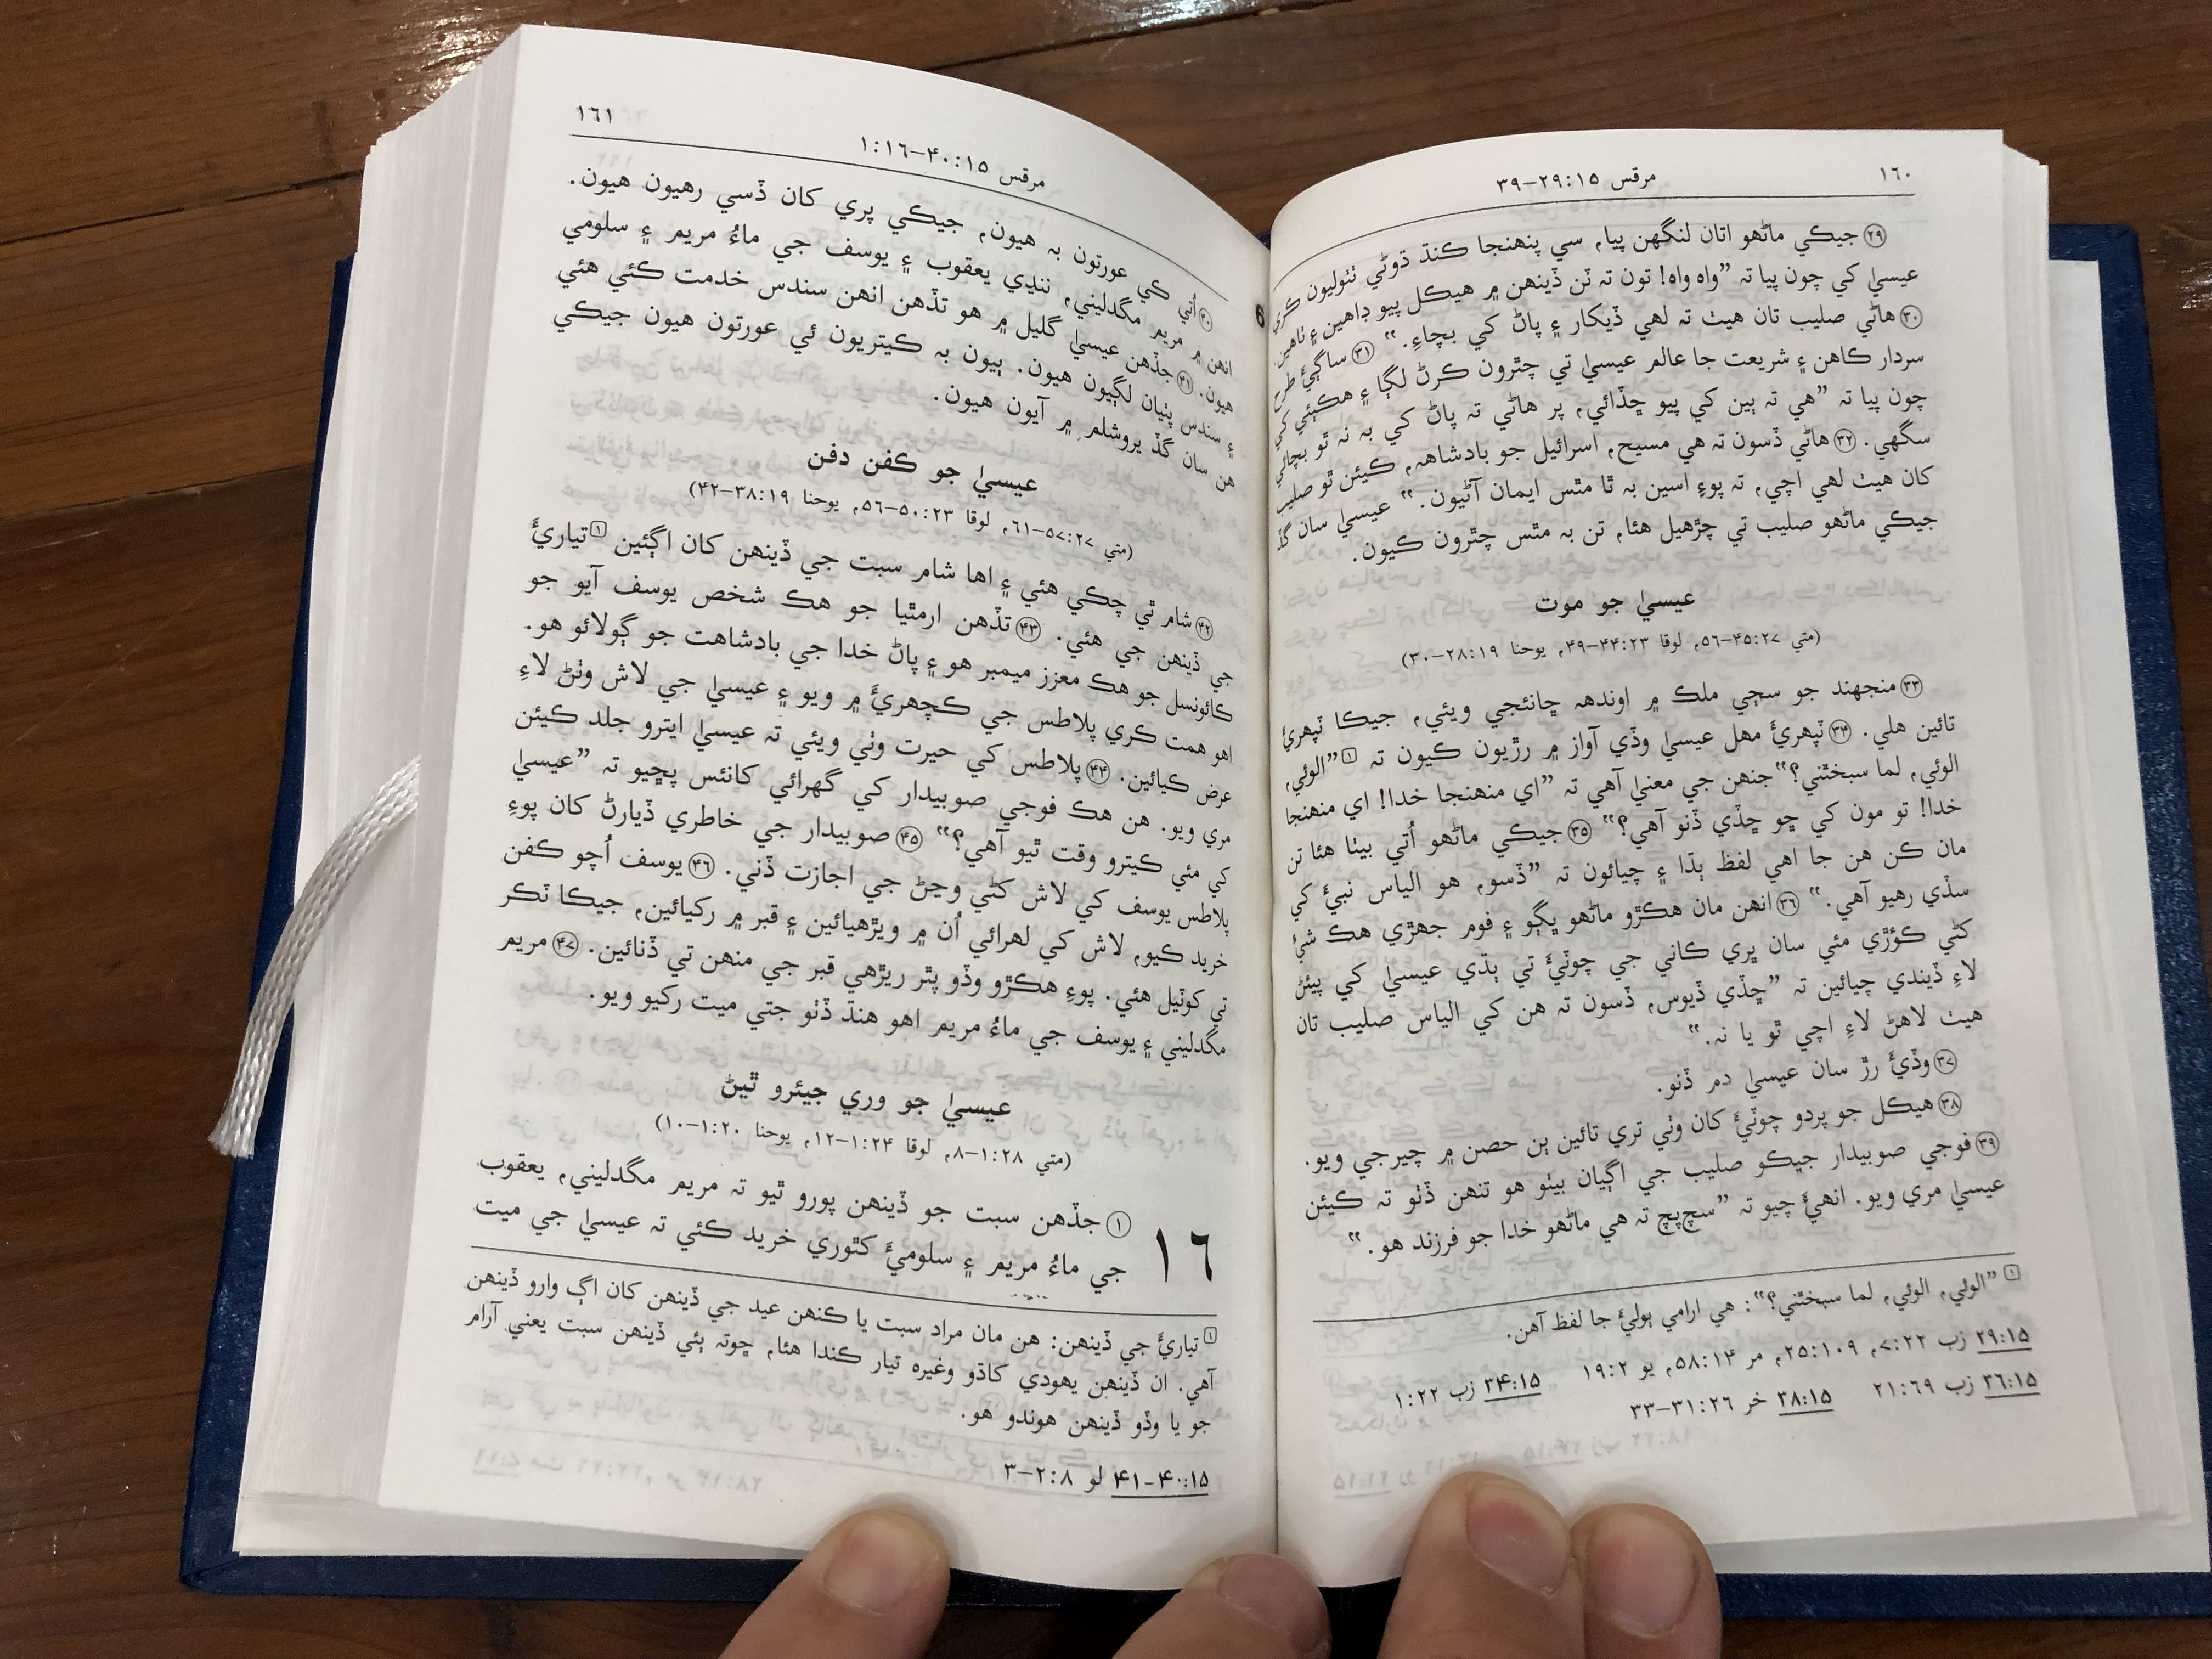 the-new-testament-in-sindhi-hardcover-bookmark-pakistan-bible-society-lahore-8-.jpg